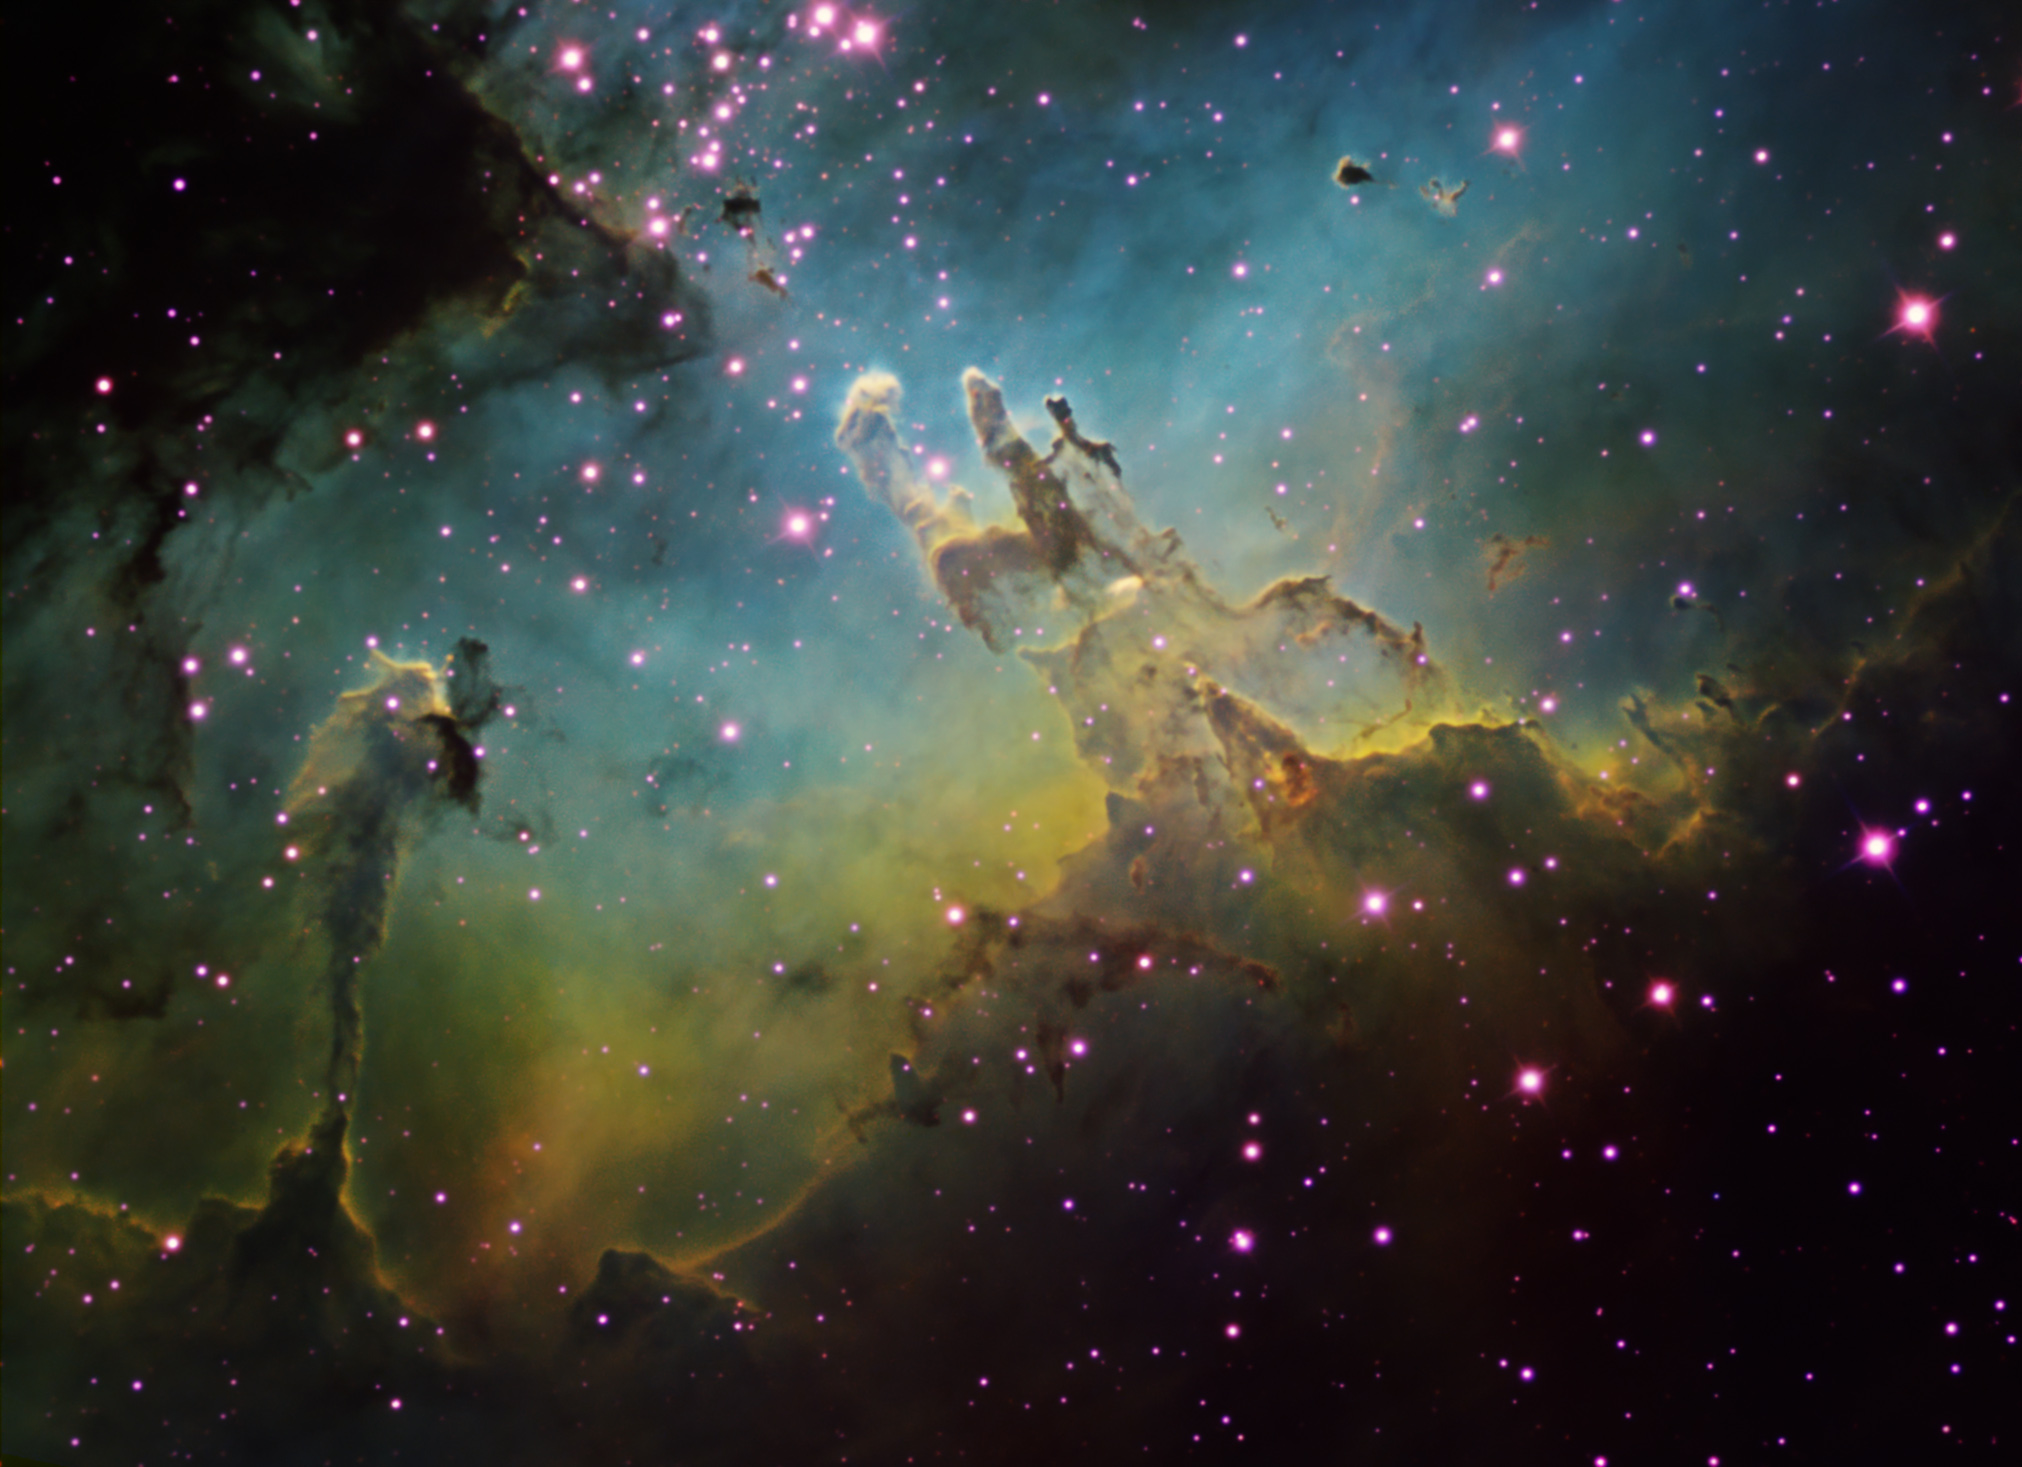 Pillars Of Creation High Resolution M16 by ken crawford with a 2022x1467